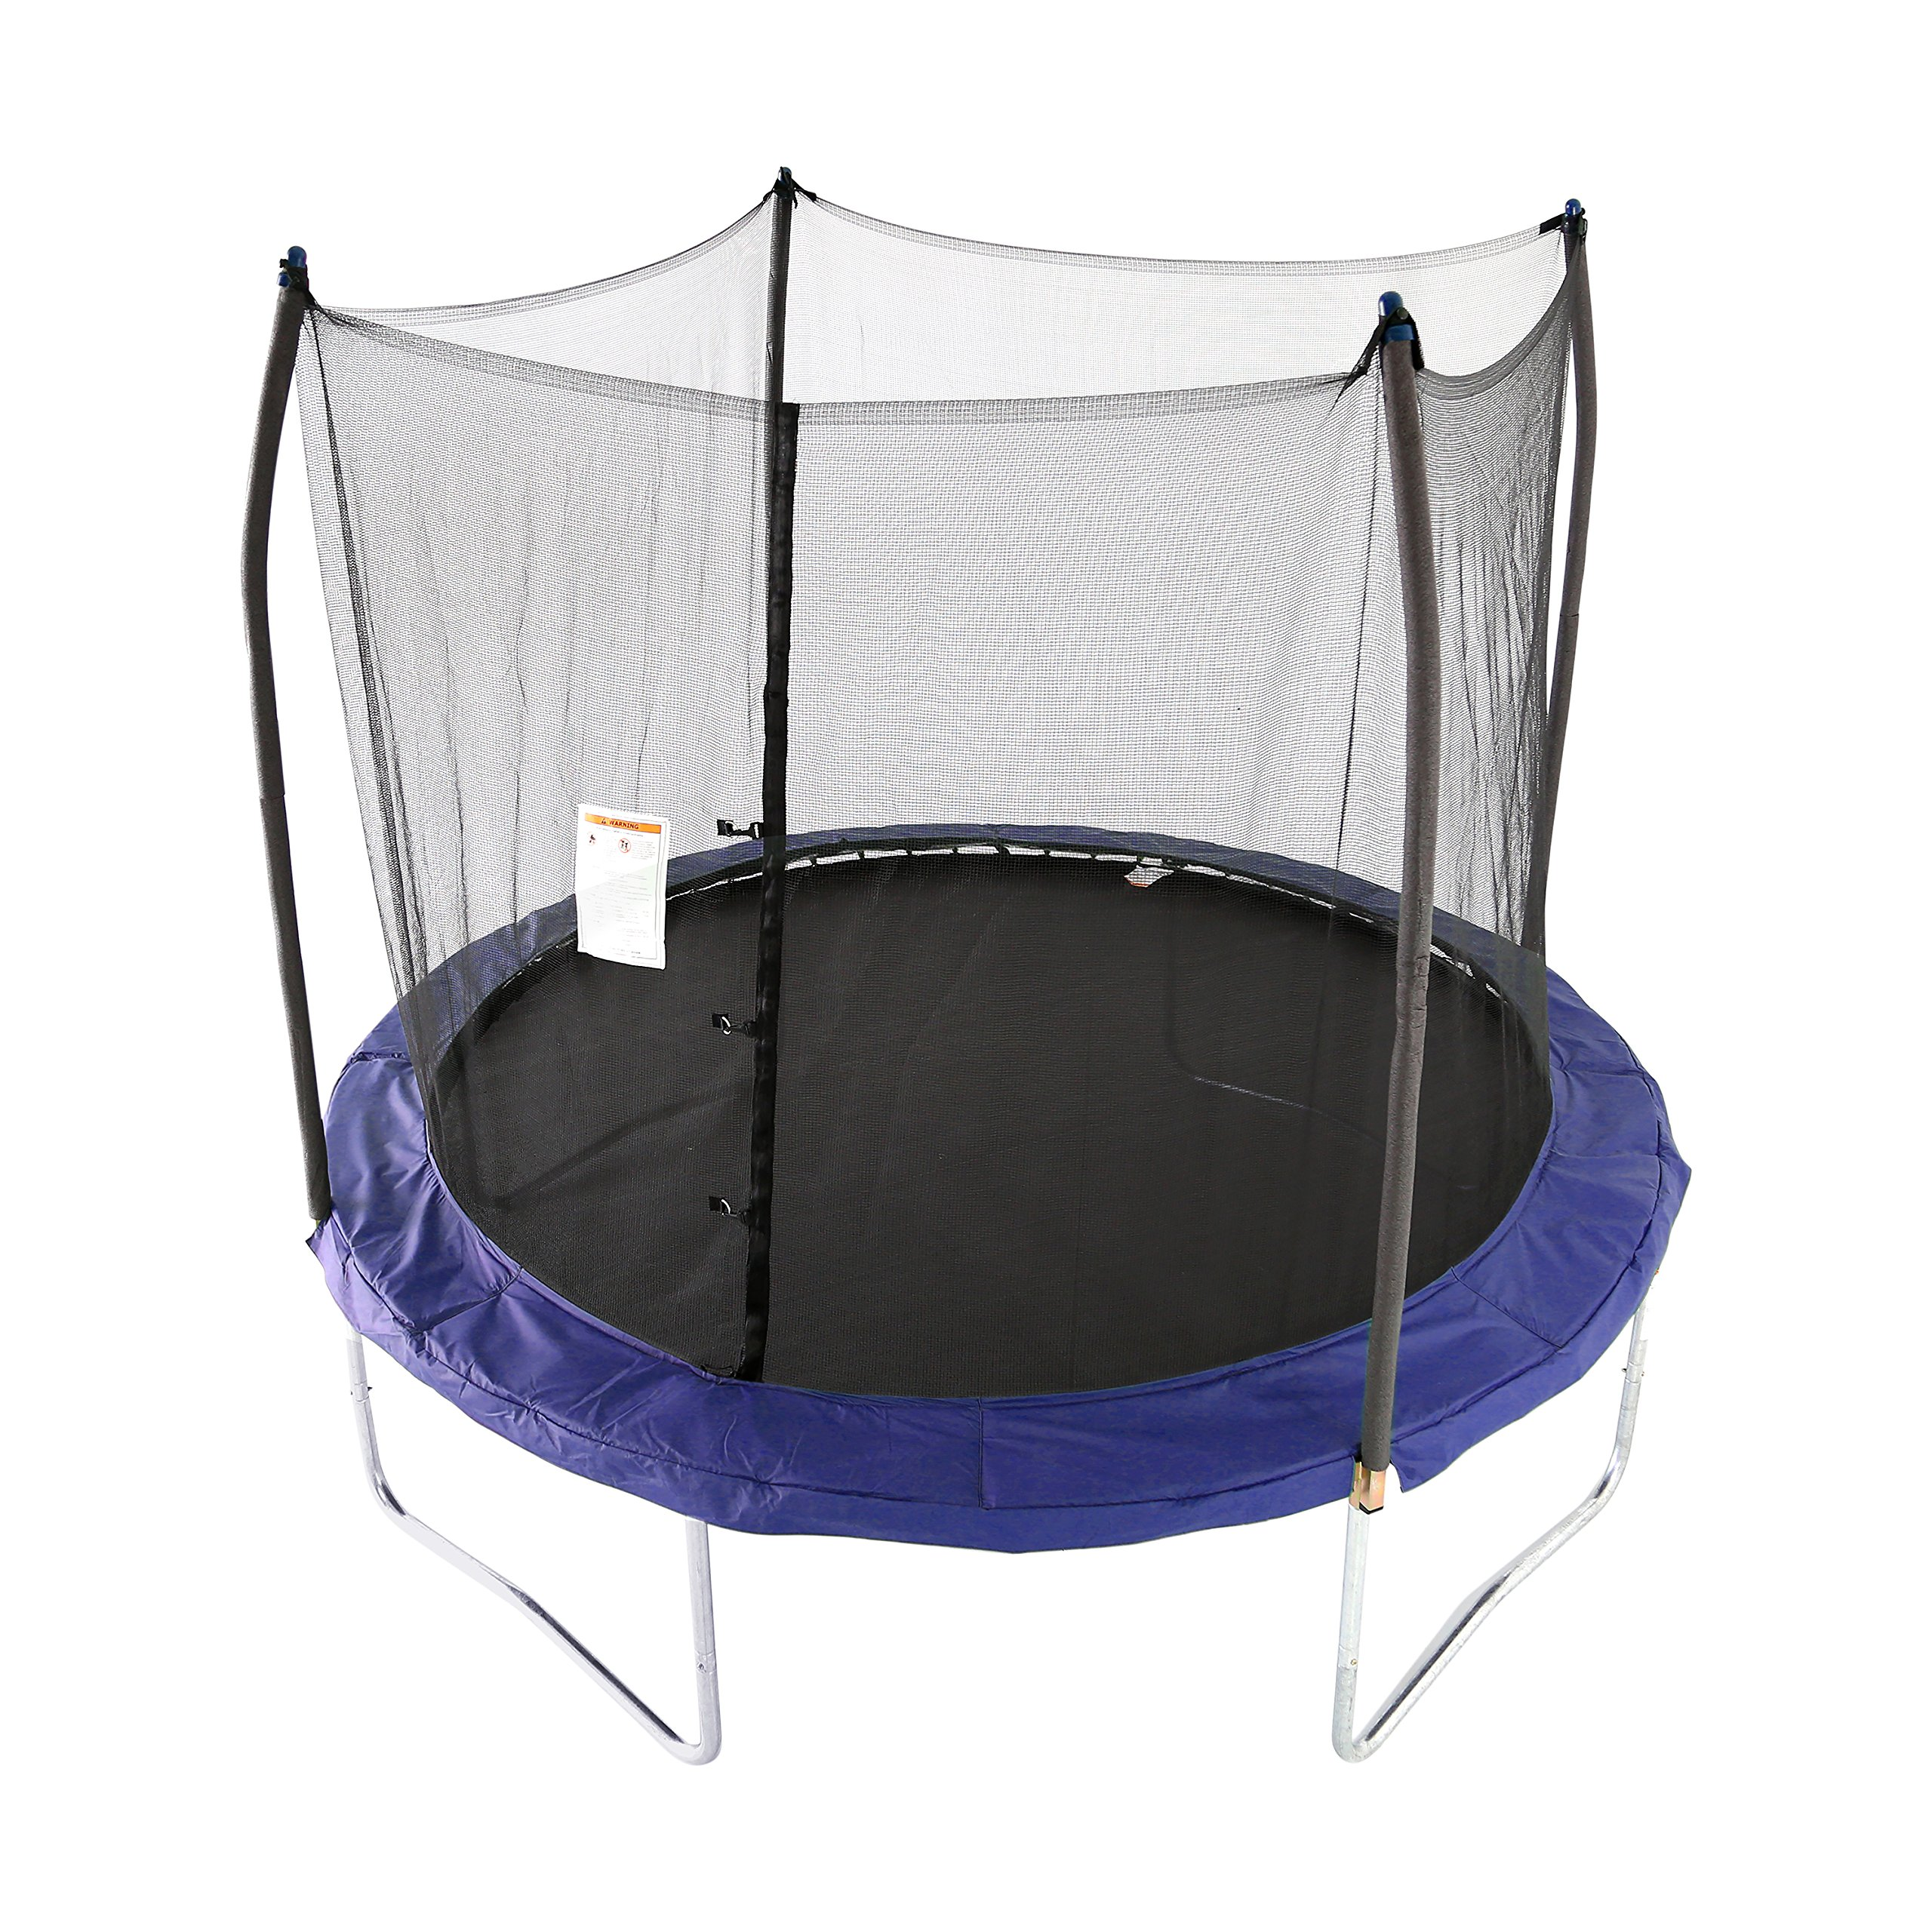 Skywalker Trampolines 10 -Foot Round Trampoline and Enclosure with spring, Blue by Skywalker Trampolines